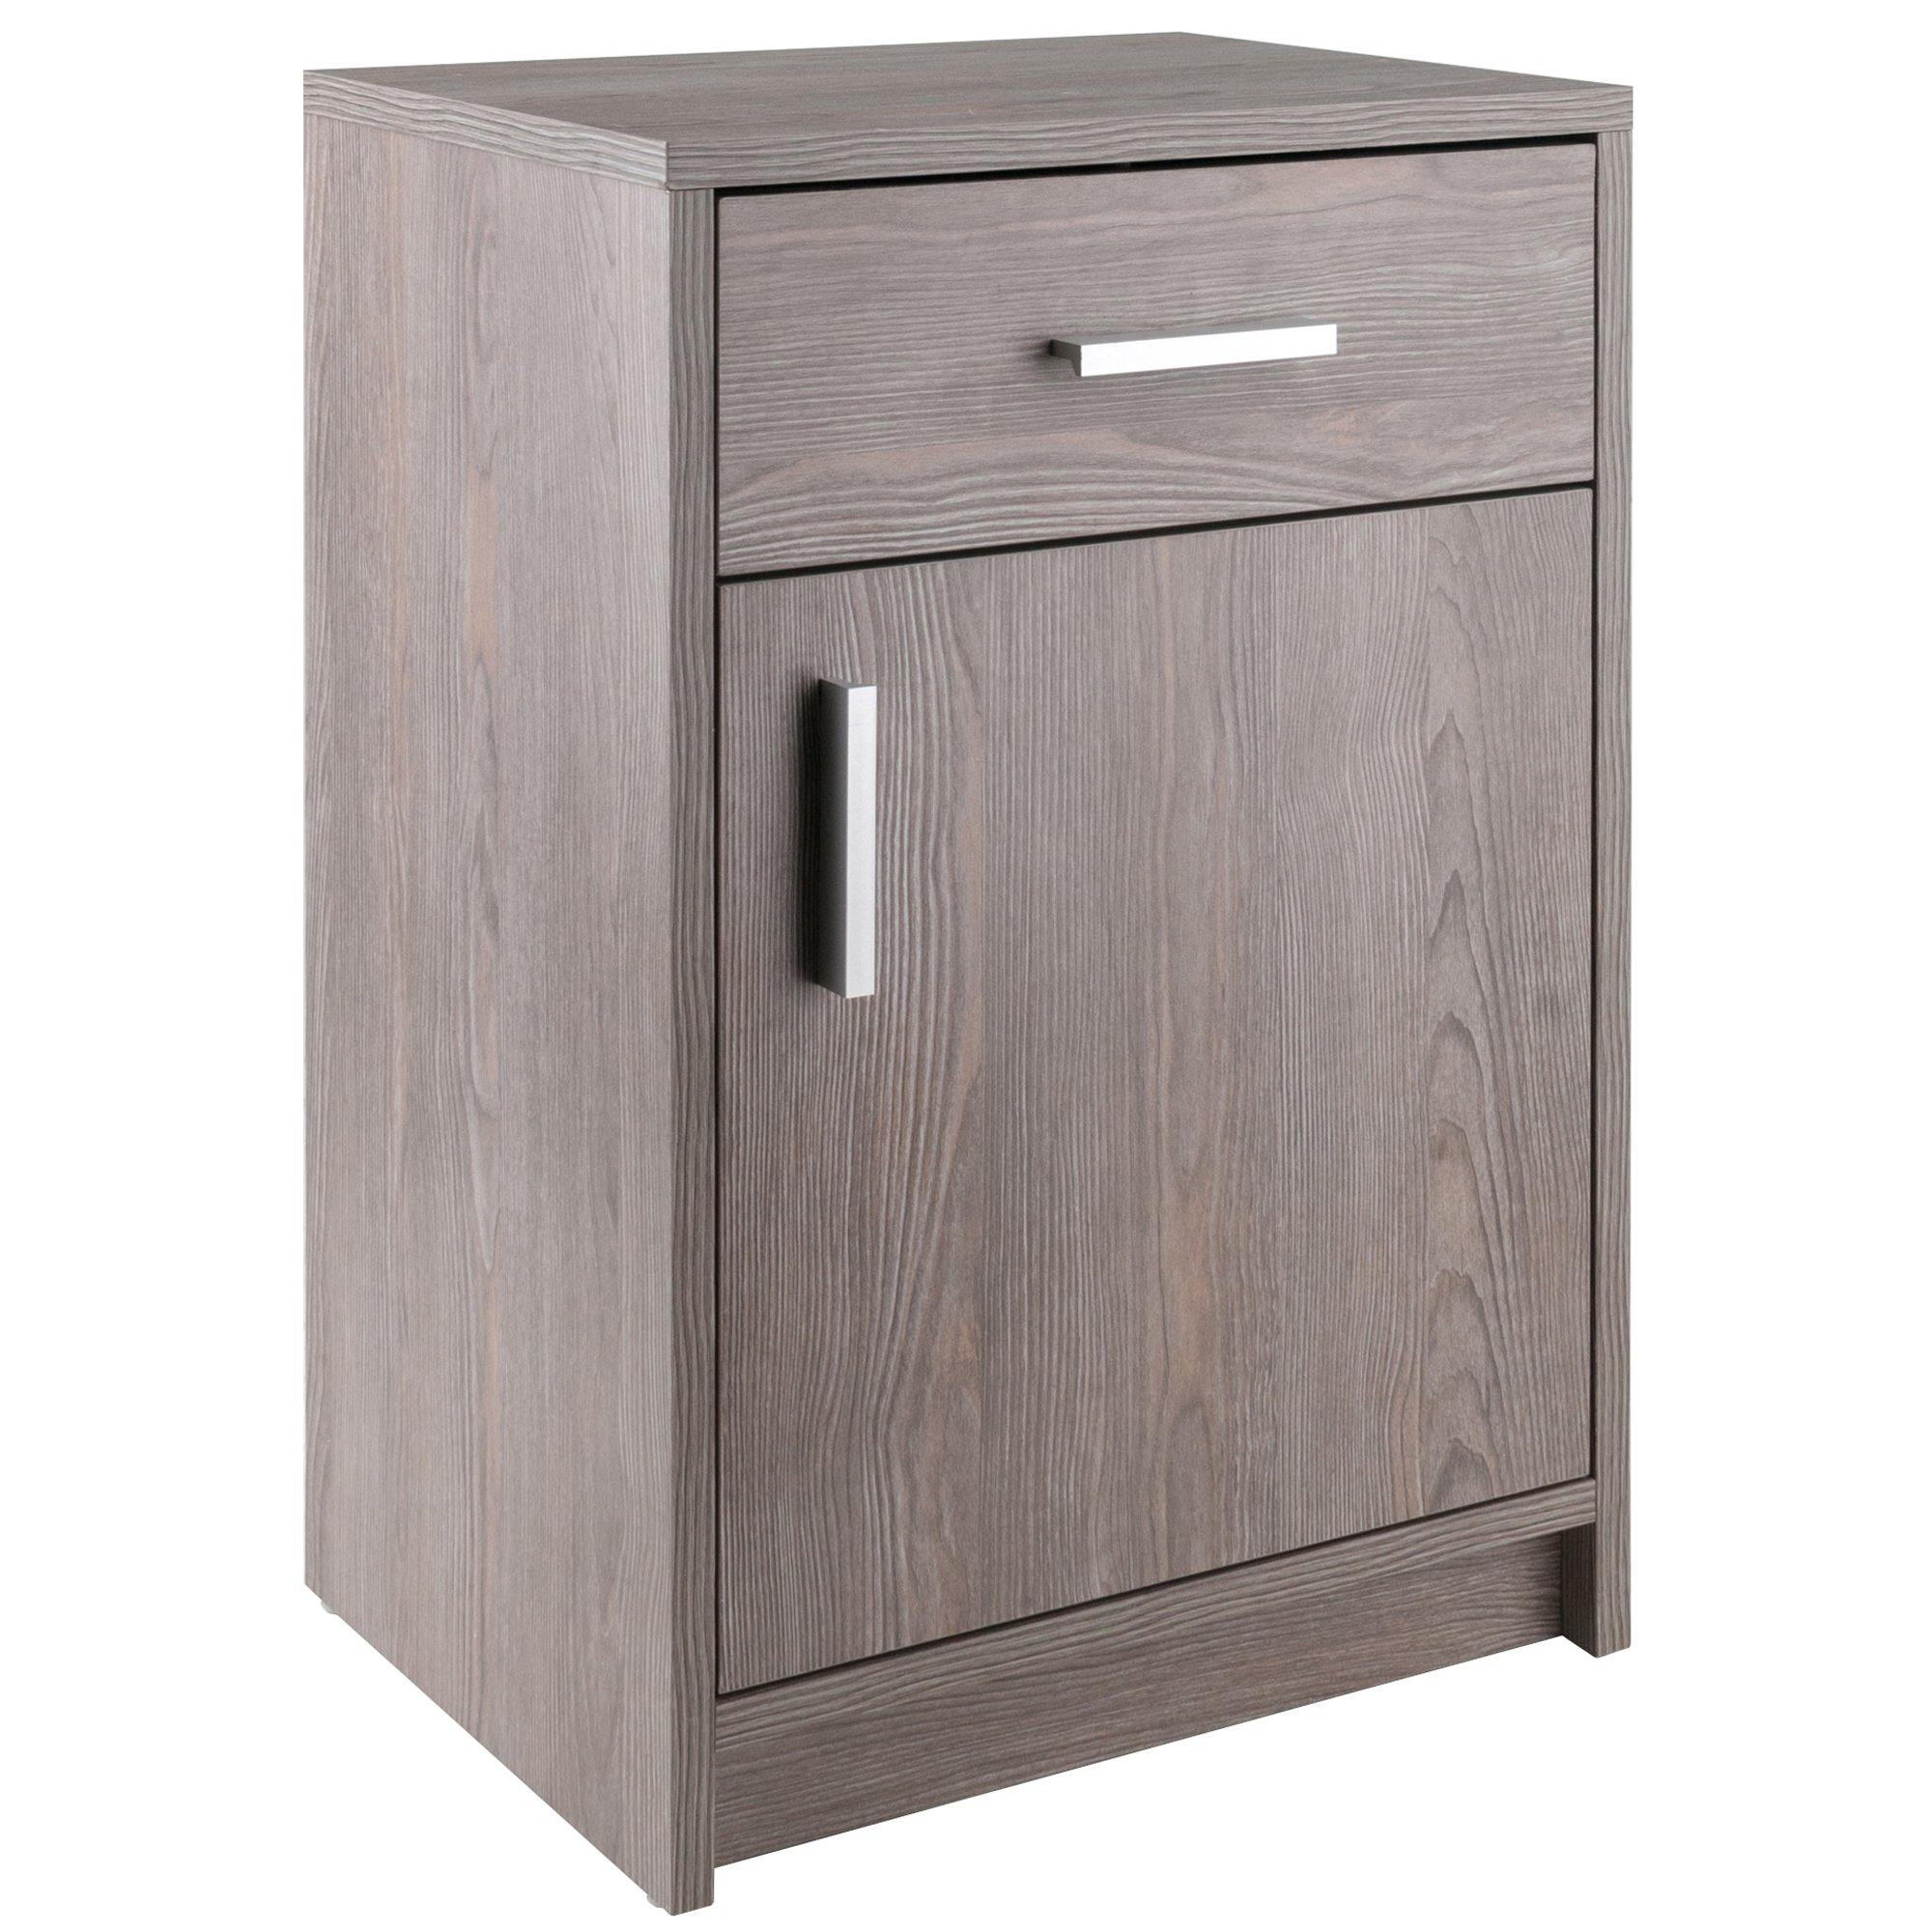 Astra Accent Table, Nightstand, Ash Gray - My USA Furniture